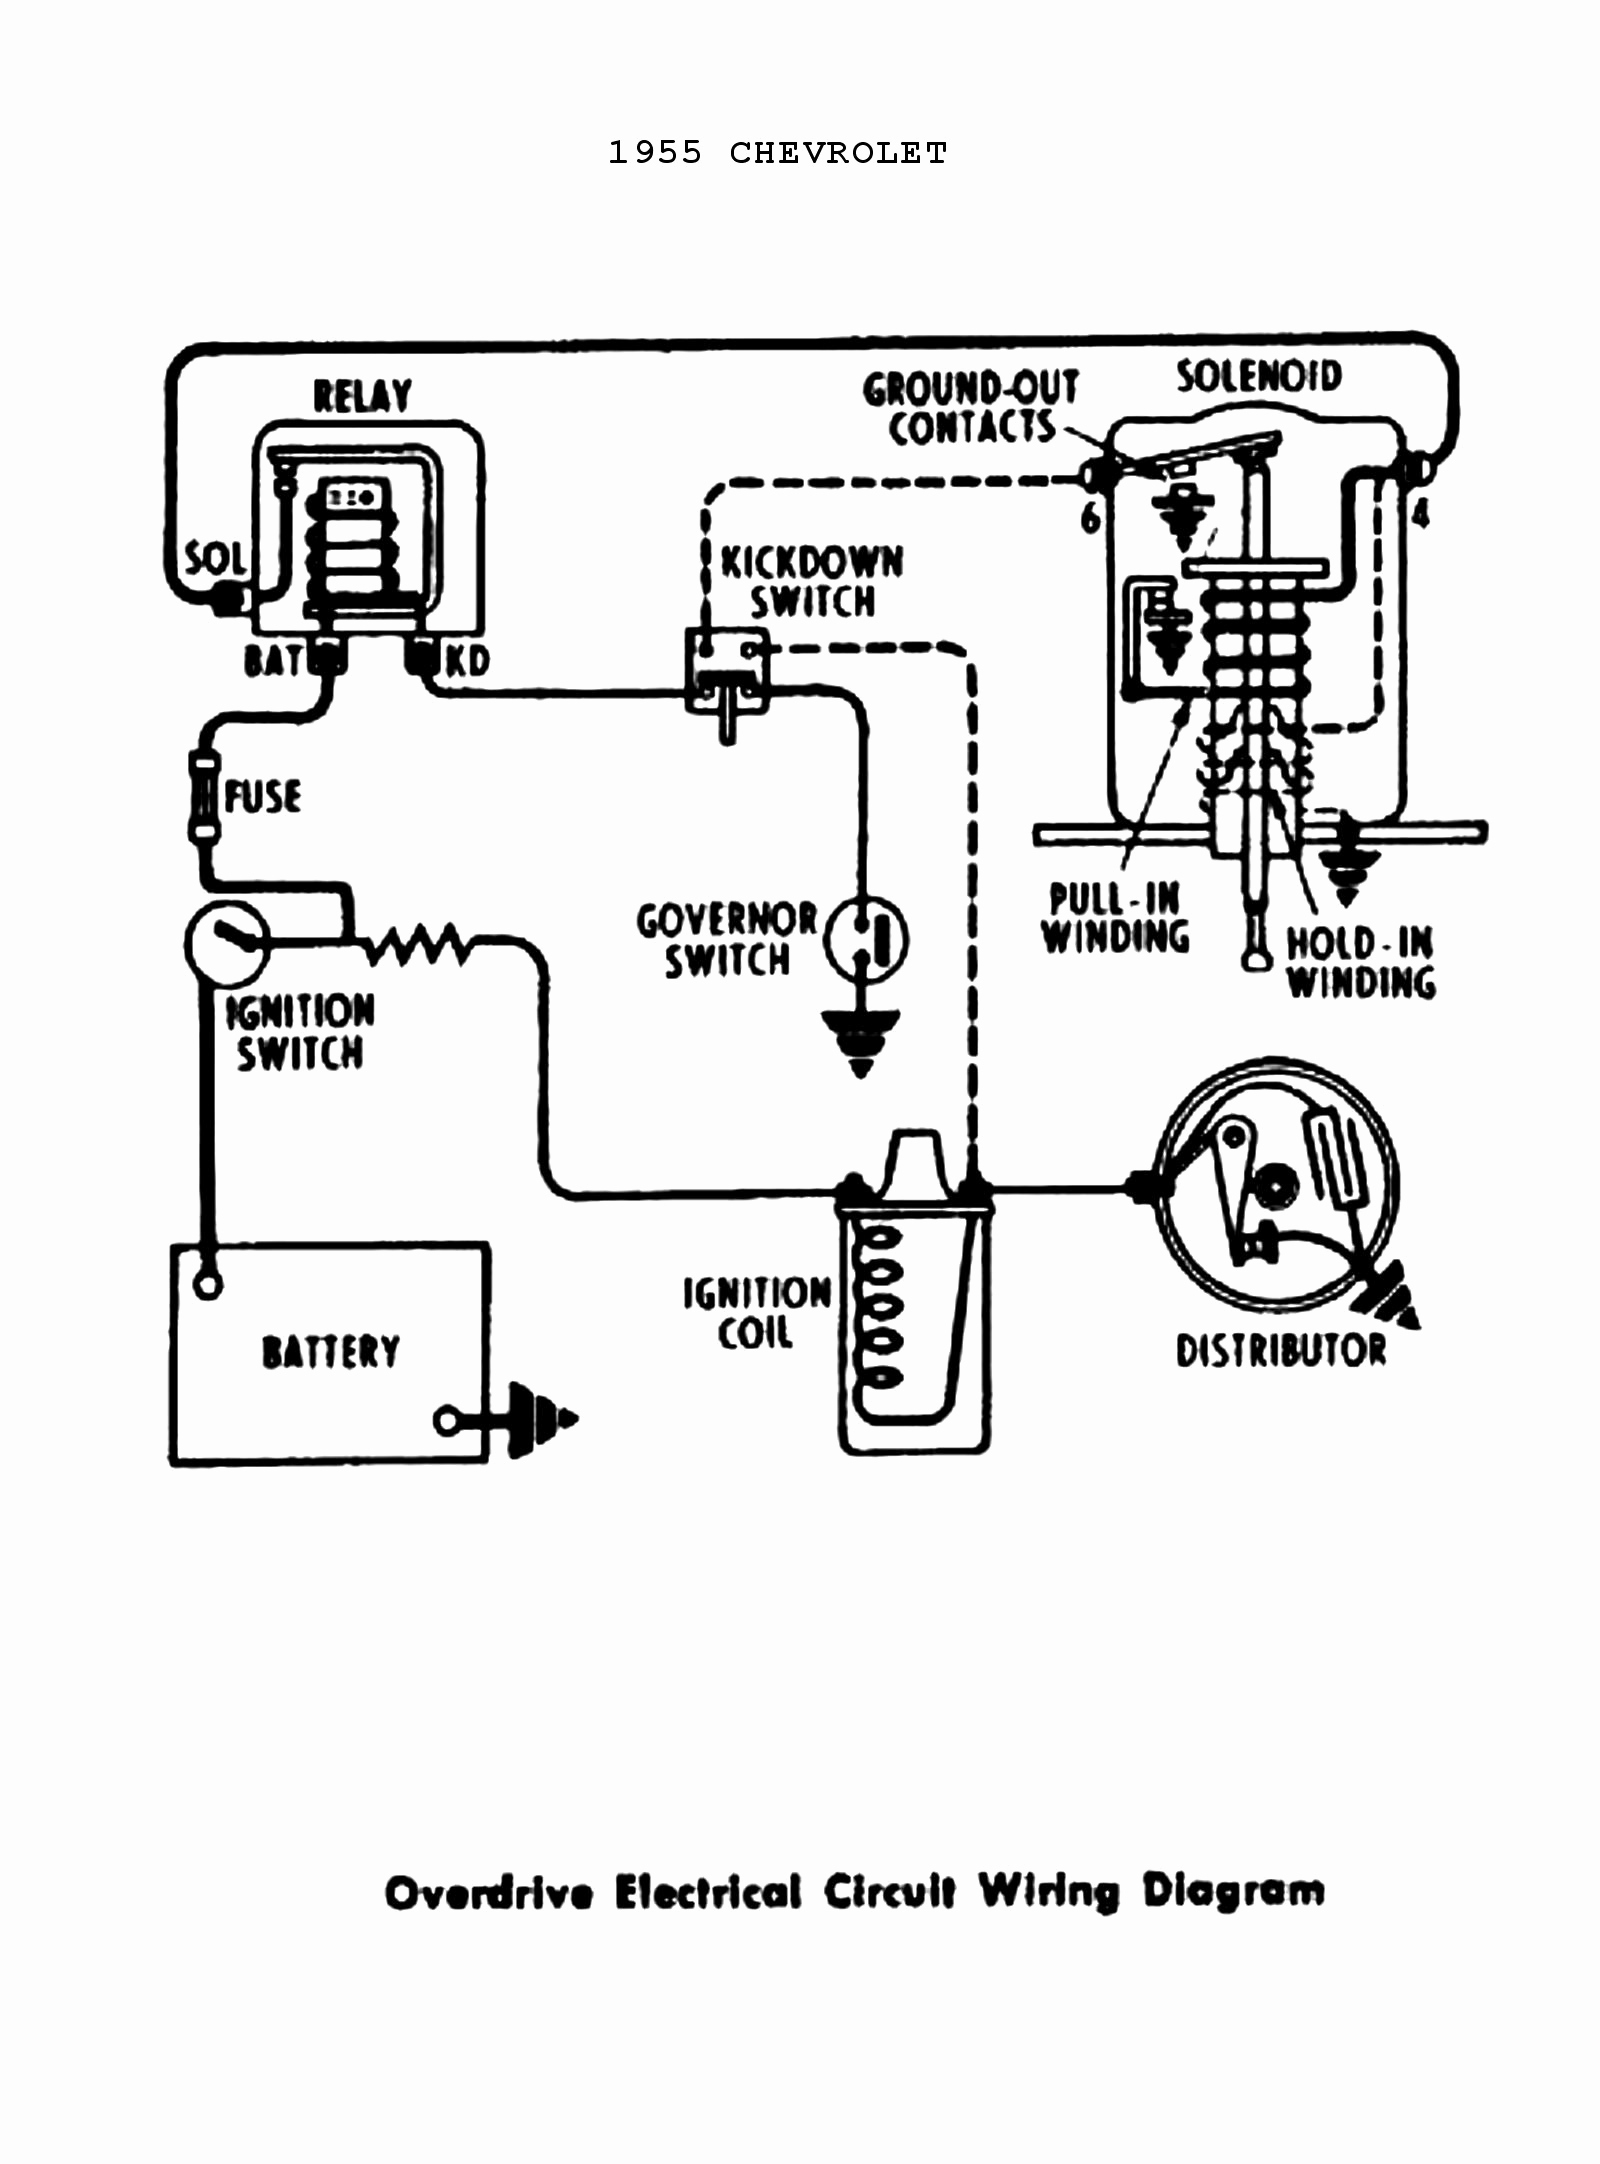 Train Horn Wire Diagram | Wiring Library - Train Horn Wiring Diagram